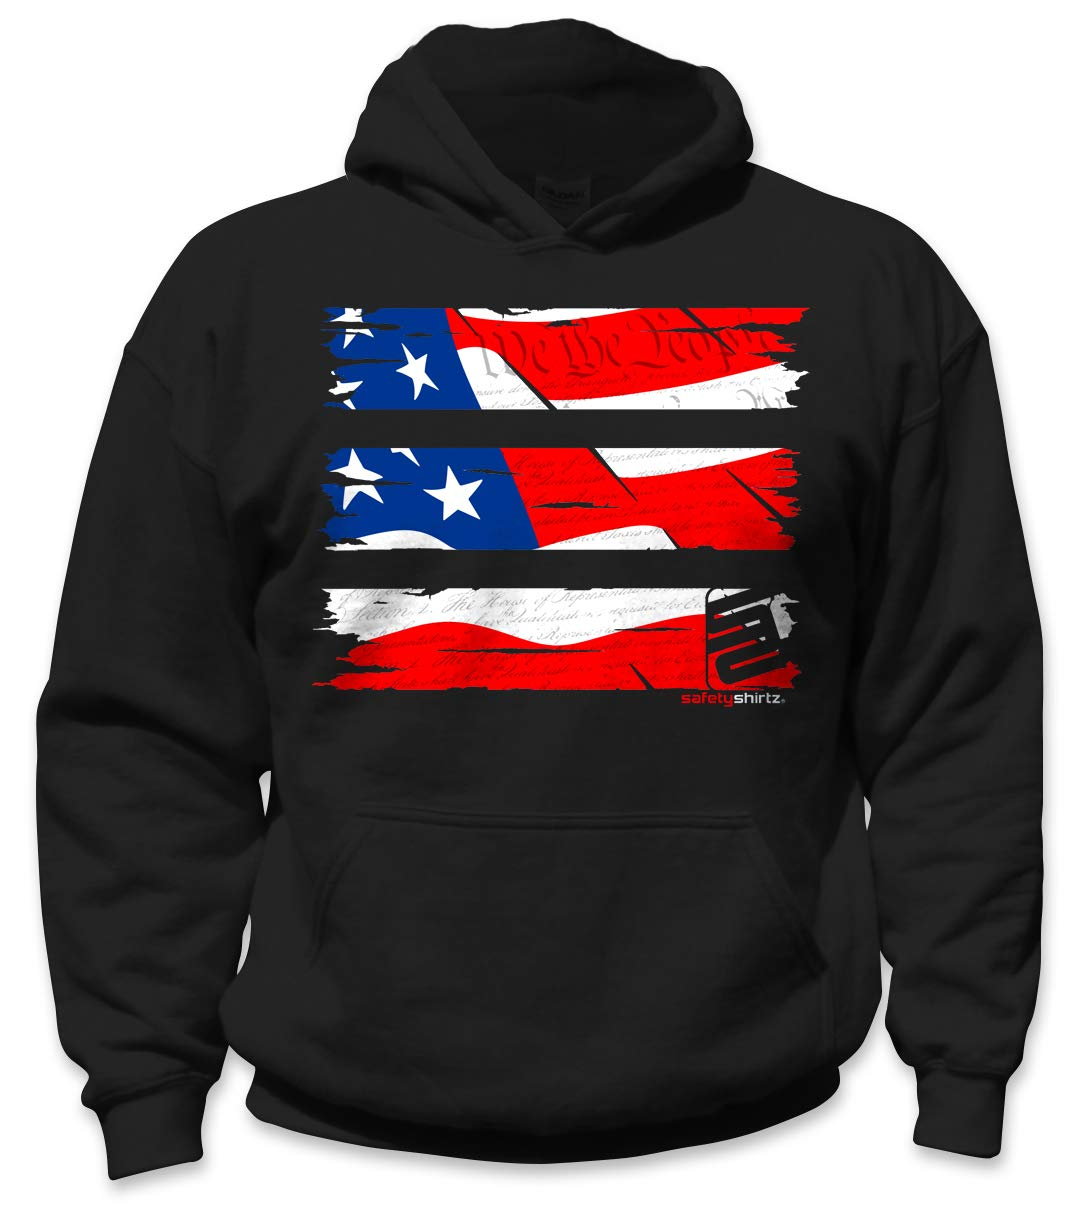 SafetyShirtz Youth Old Glory Hoodie Black/Red L